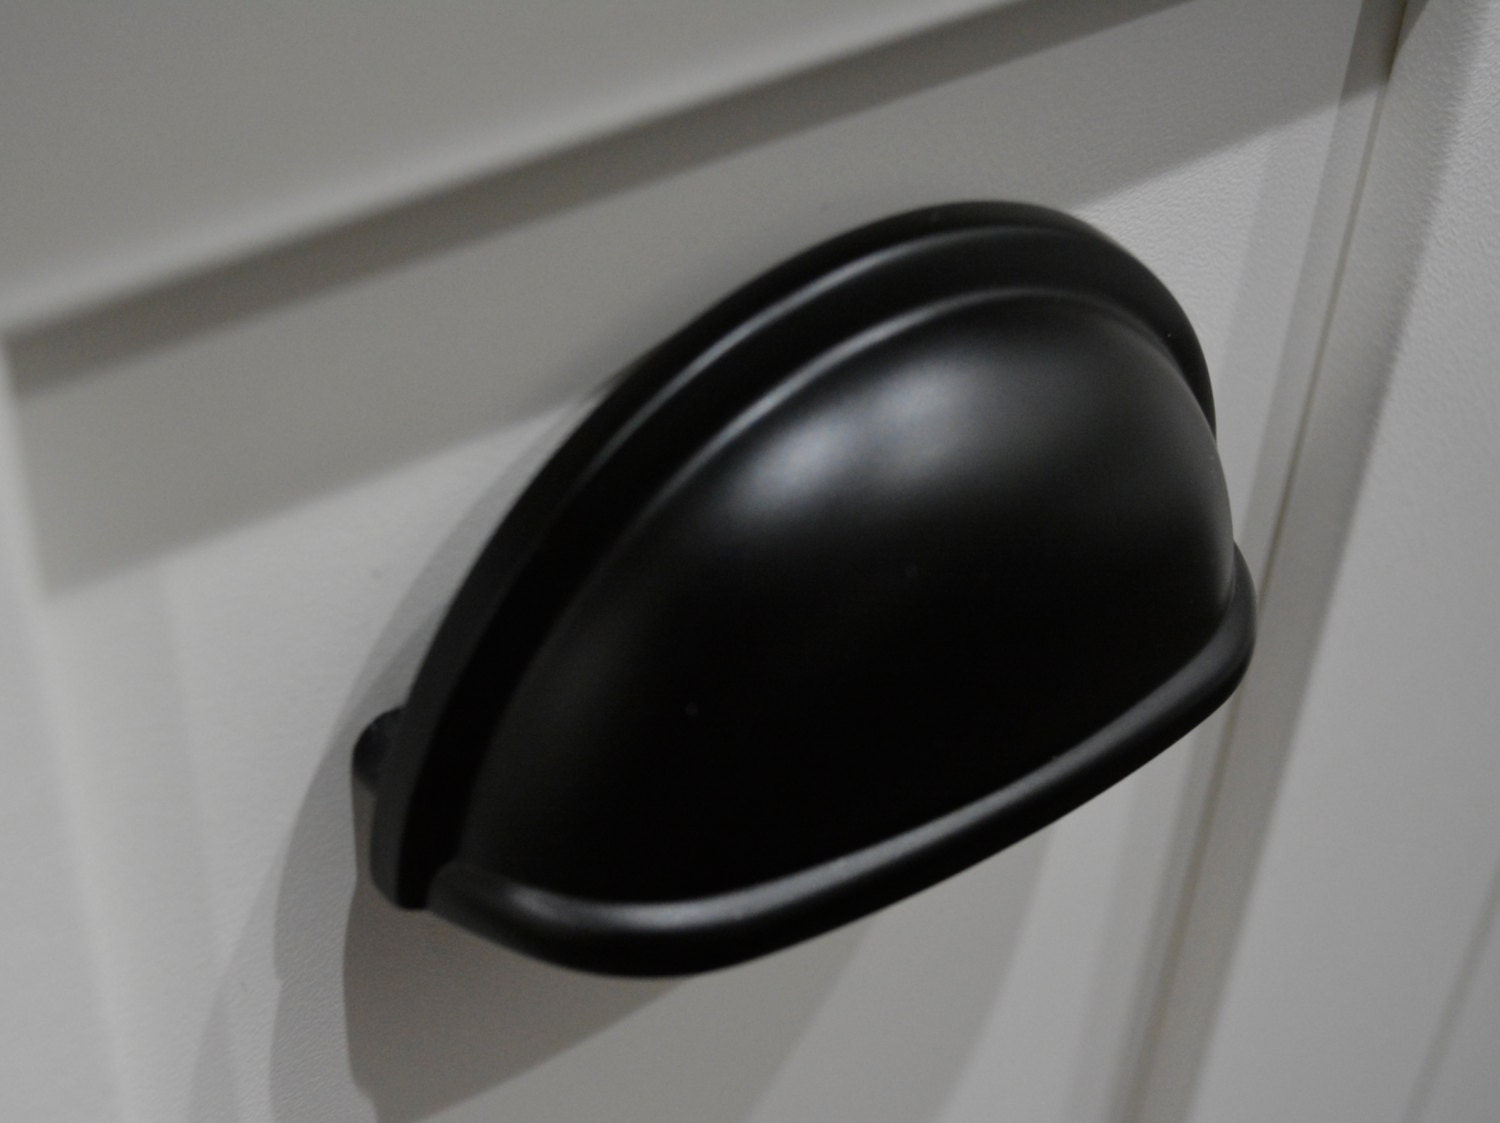 Matte Black Cup Pull Drawer Cup Pull 3inch Cup Pull Chrome